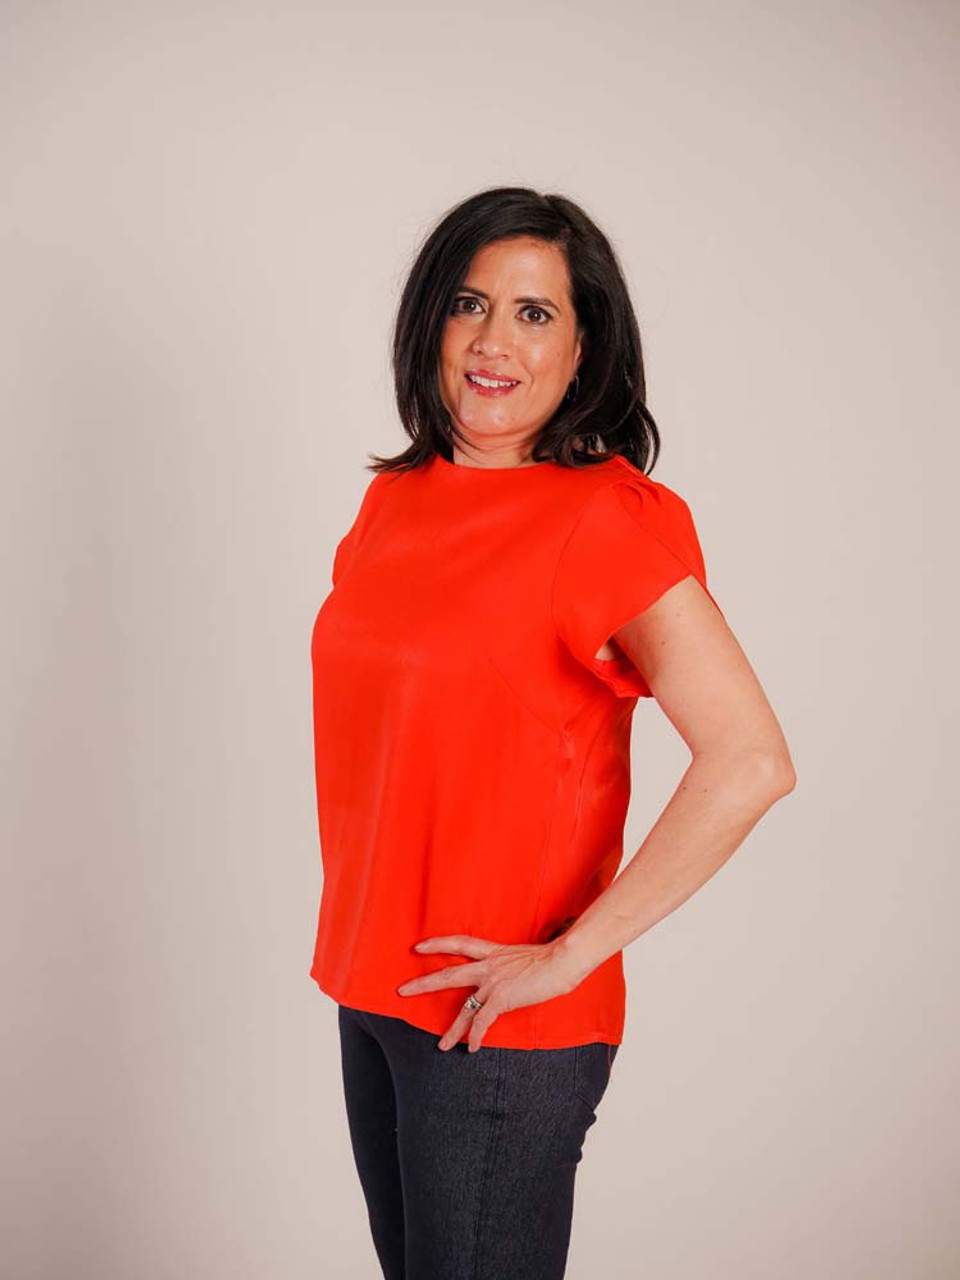 Beautifully bright orangey red blouse with a subtle sheen. Round neck; tulip sleeves; front darts for a taylored fit; golden button with loop closure in back